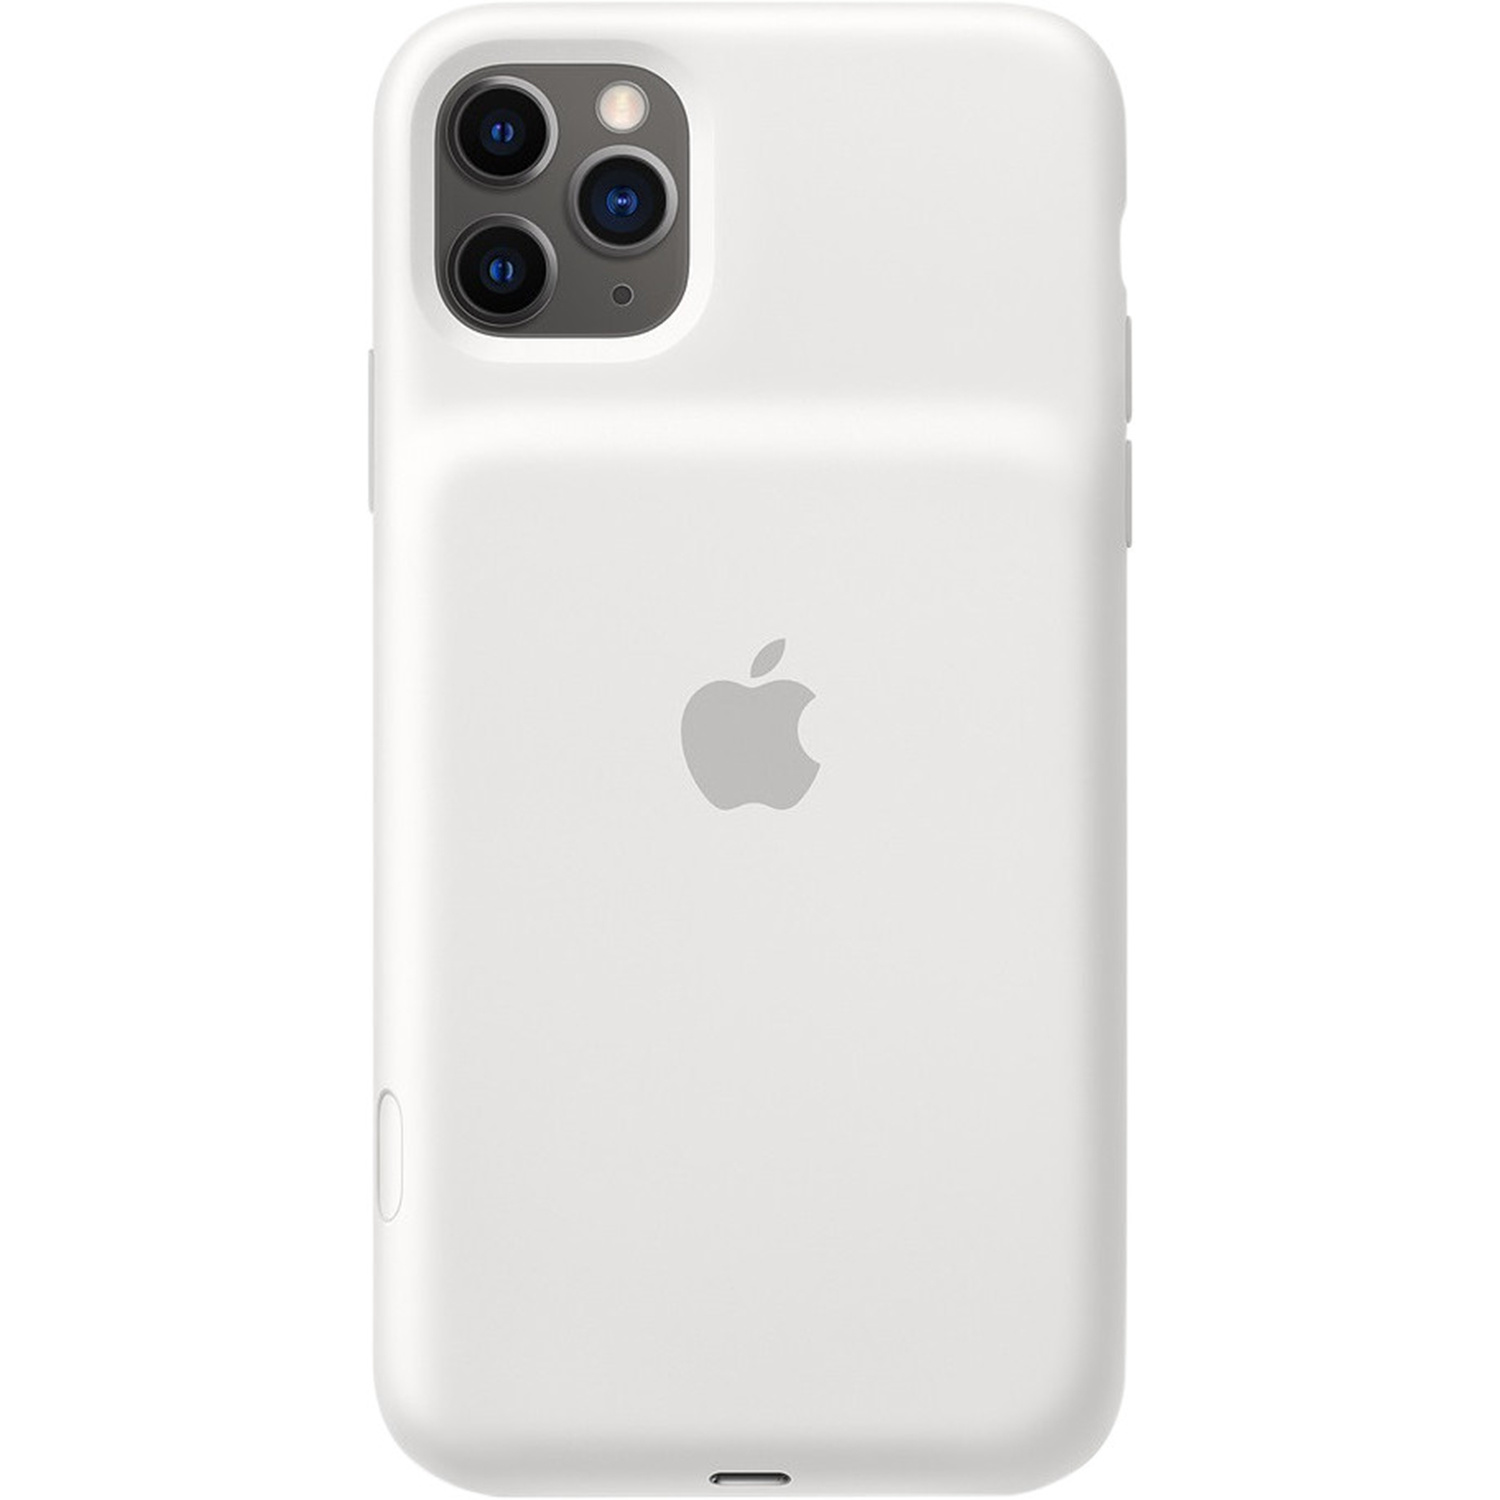 Apple Smart Battery Case iPhone 11 Pro Max - White